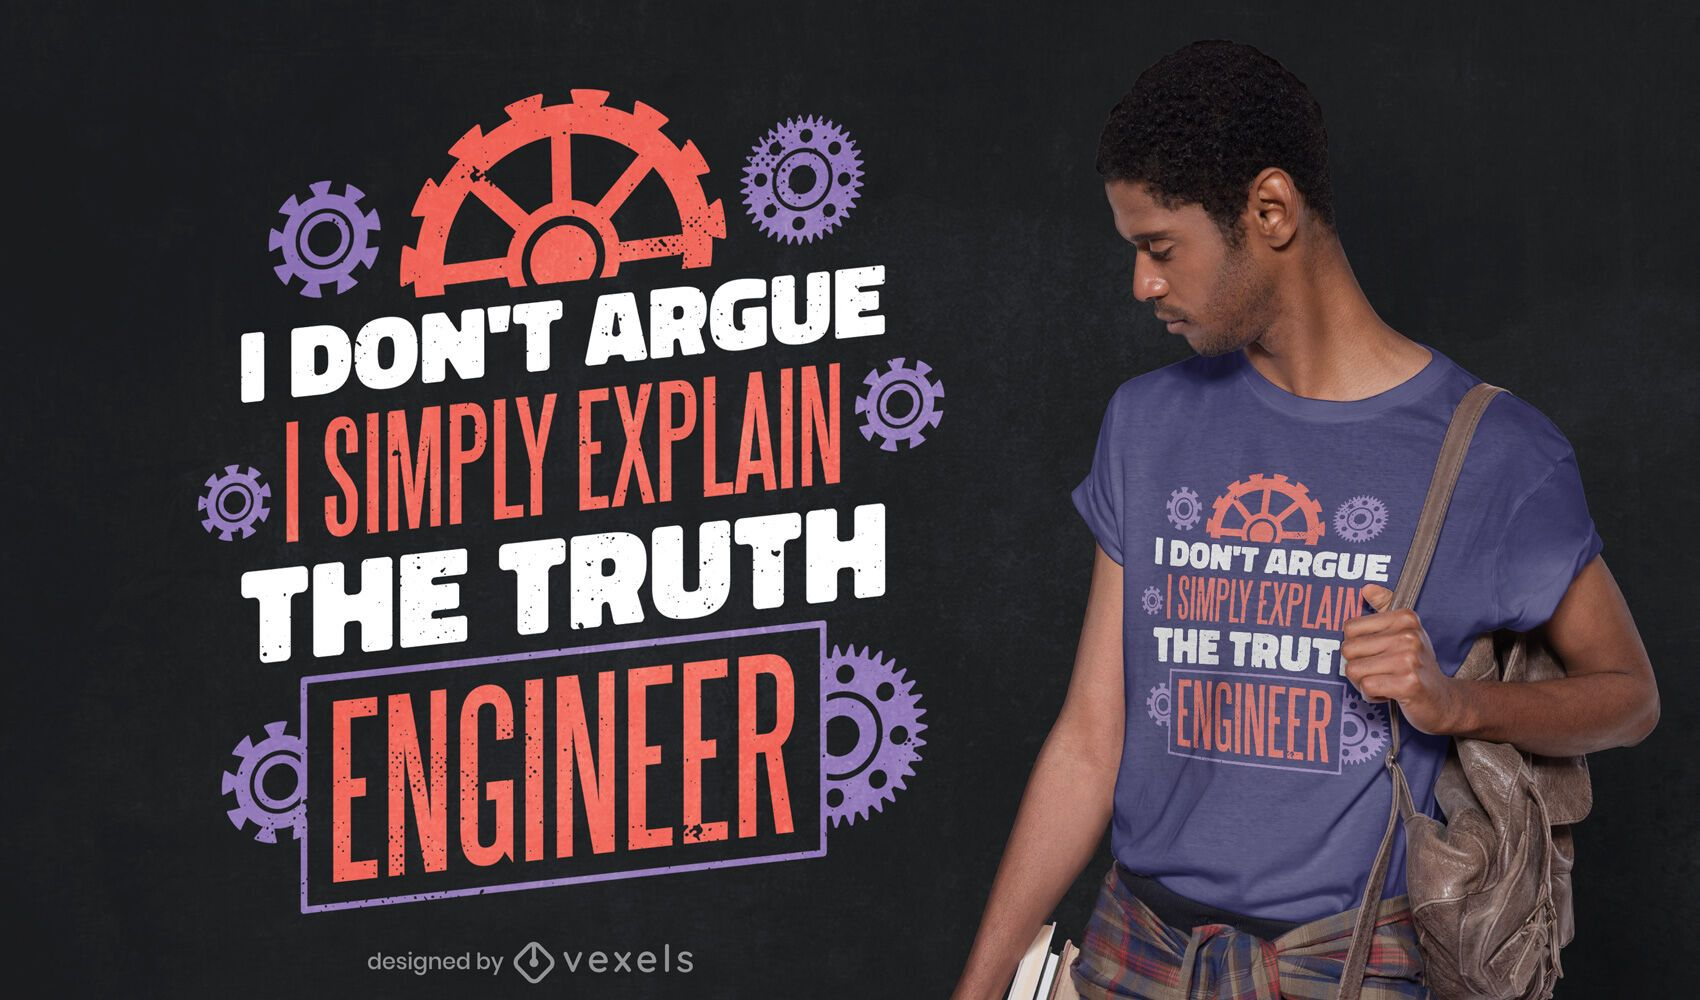 Engineer quote t-shirt design